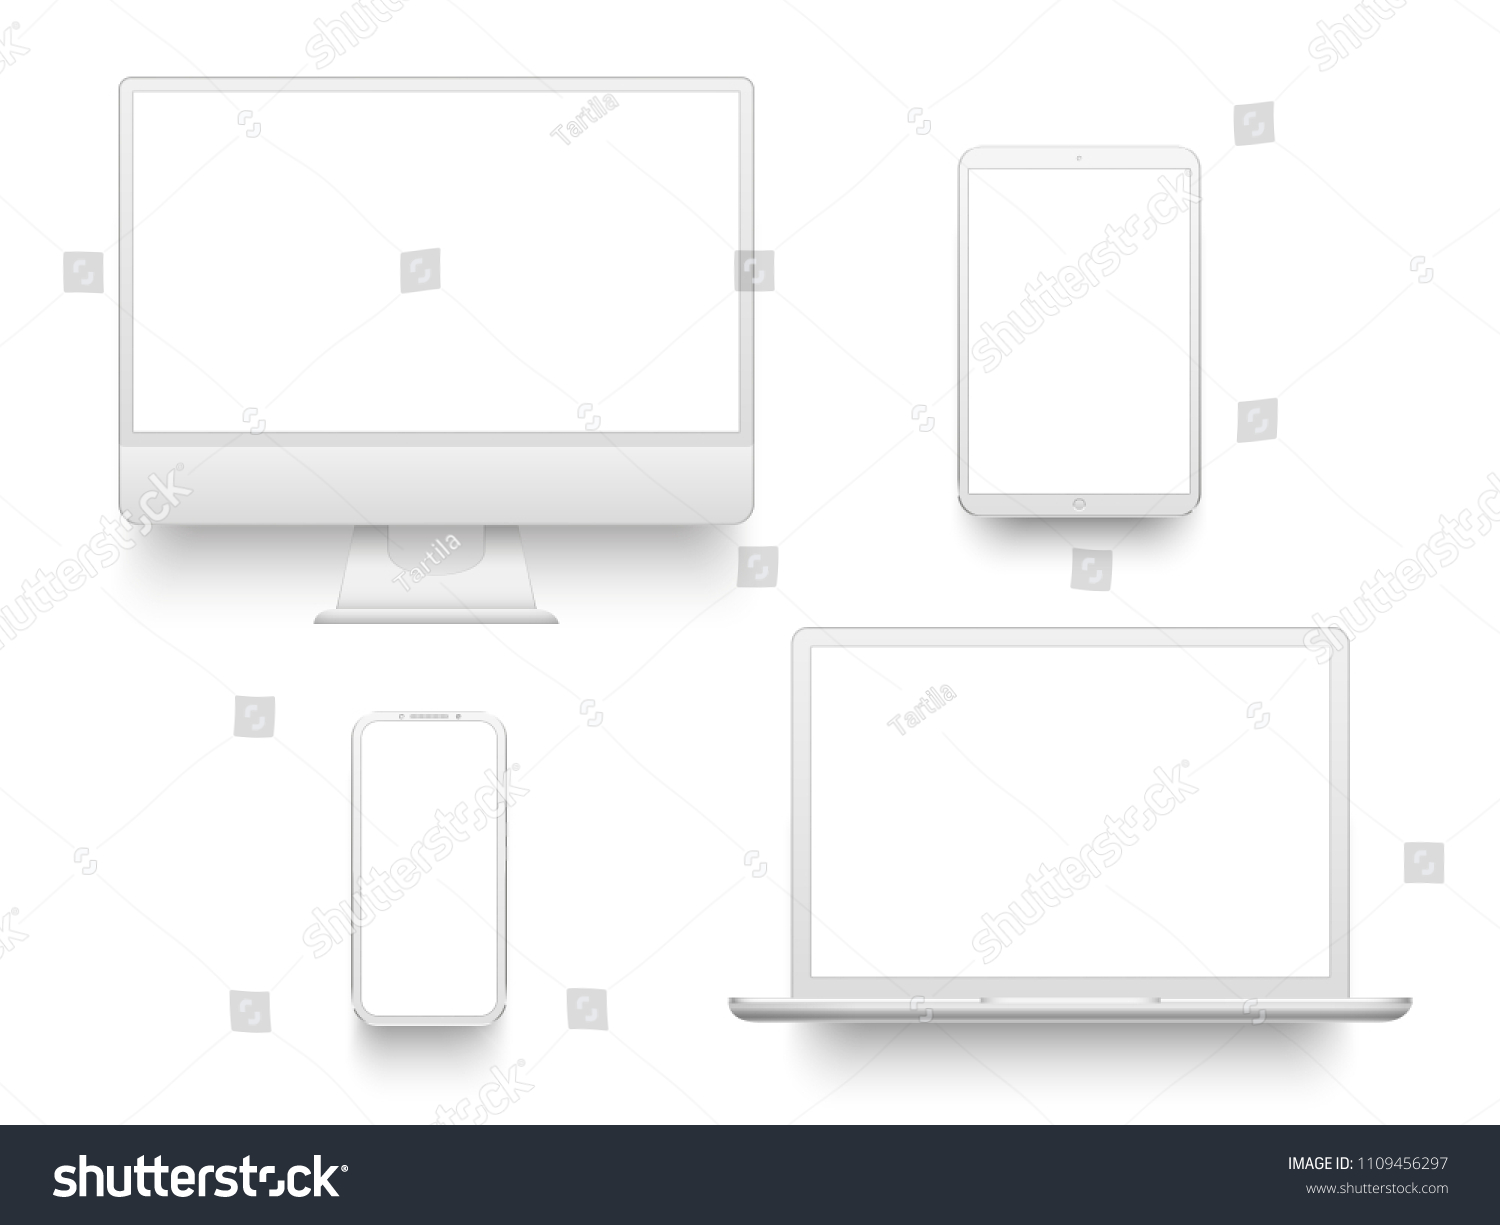 White desktop computer display screen smartphone tablet portable notebook or laptop. Outline mockup electronics devices phone monitor lines realistic simple isolated 3d vector set #1109456297